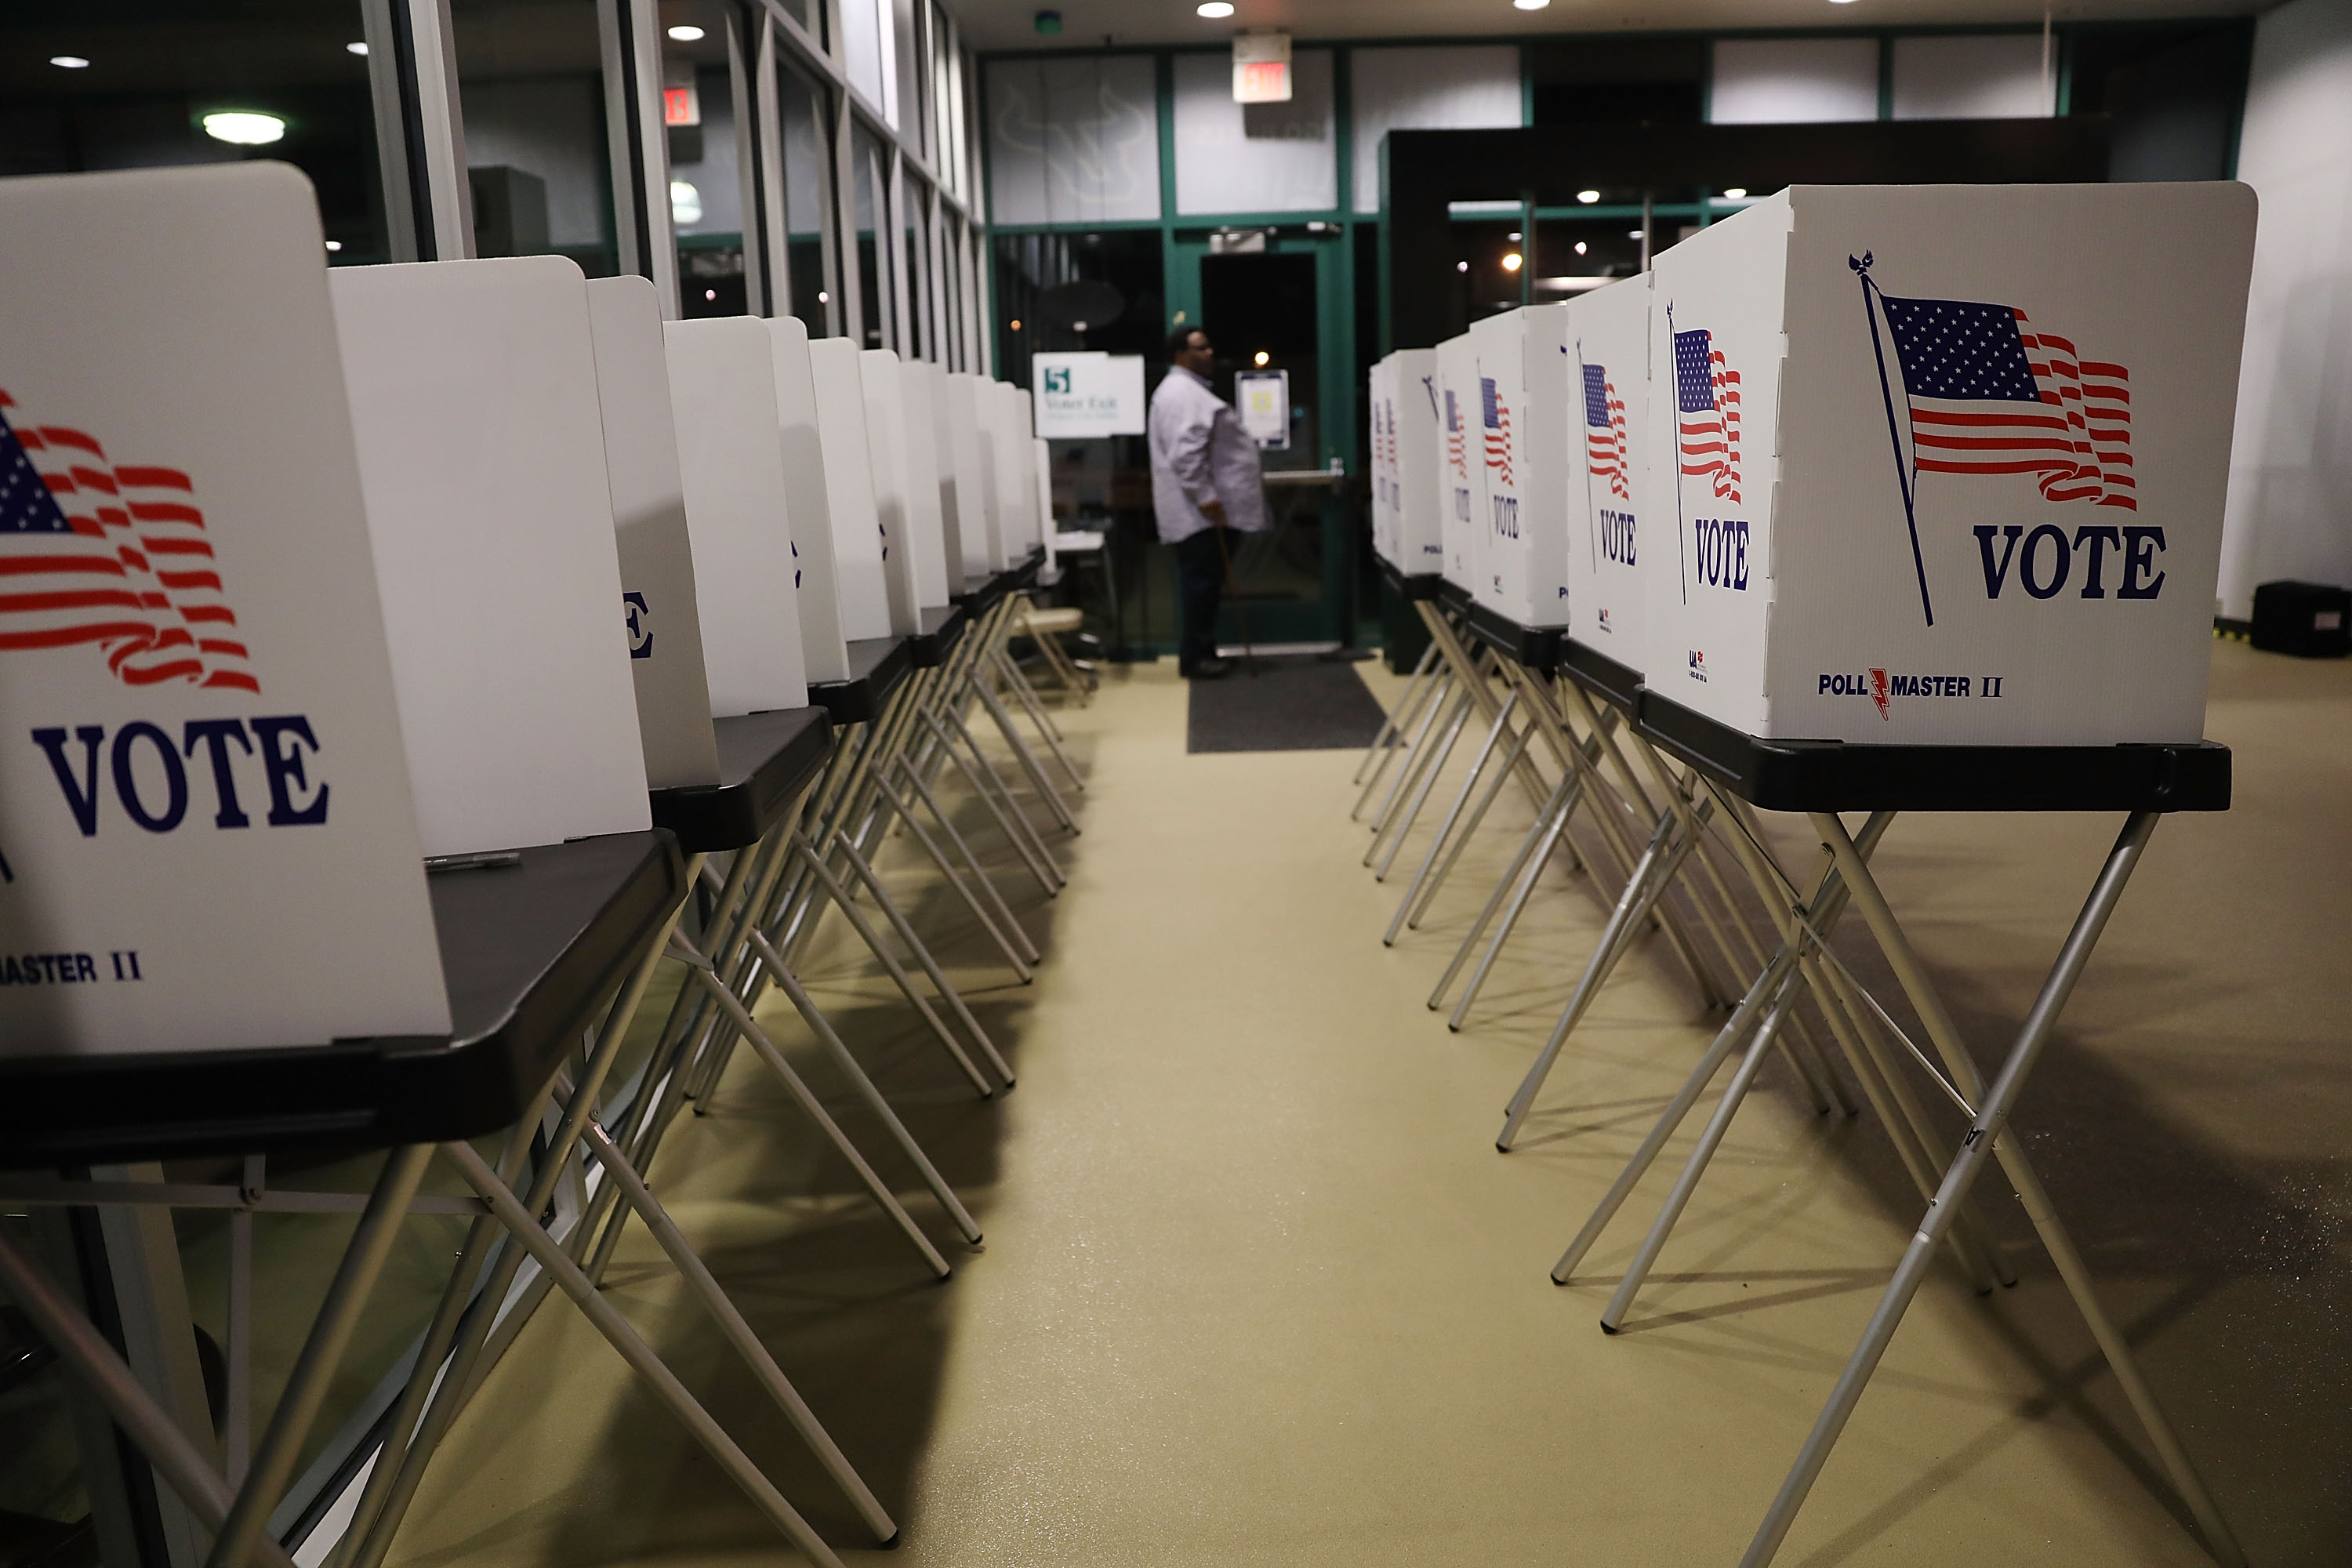 Voting booths are setup at the Yuengling center on the campus of University of South Florida as workers prepare to open the doors to early voters on October 22, 2018 in Tampa, Florida. Florida voters head to the polls to cast their early ballots in the race for the Senate as well as the Governors seats.